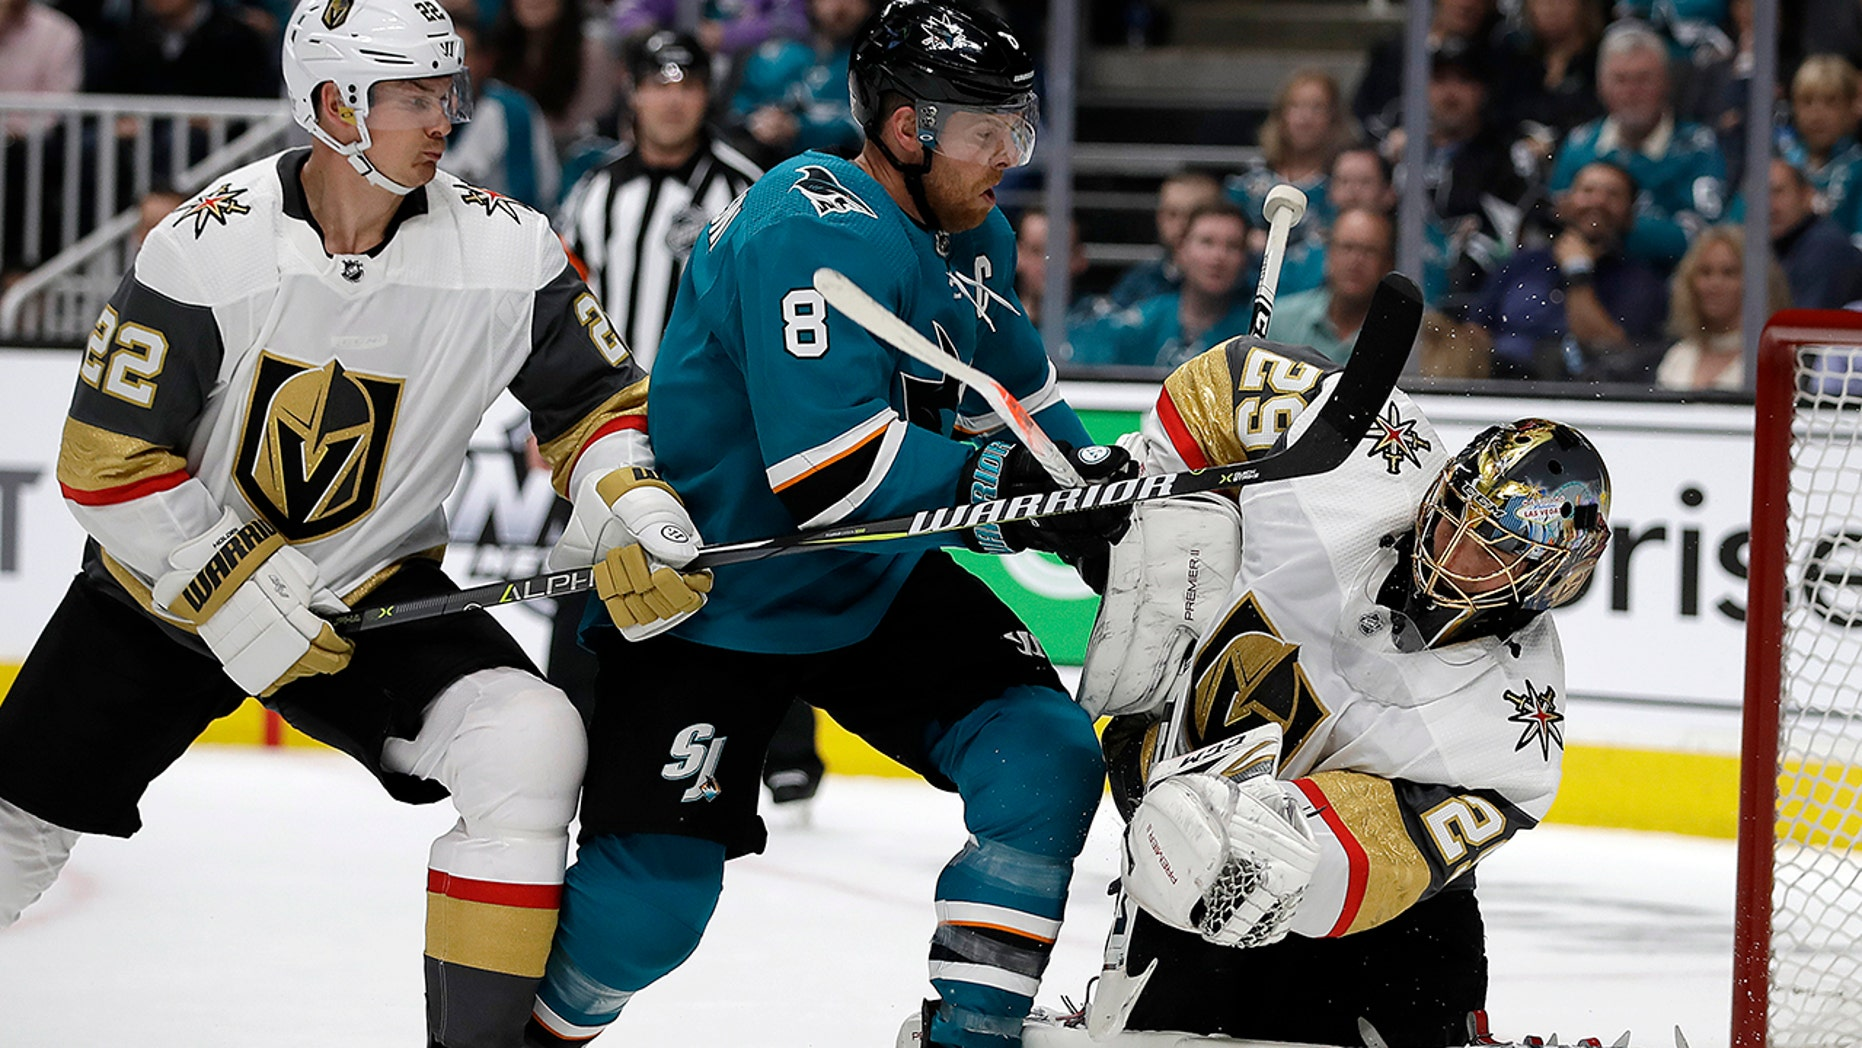 San Jose Sharks' Joe Pavelski (8) reacts after scoring a goal against Vegas Golden Knights goalie Marc-Andre Fleury, right, during the first period of Game 1 of an NHL hockey first-round playoff series Wednesday, April 10, 2019, in San Jose, Calif. At left is Golden Knights defenseman Nick Holden.